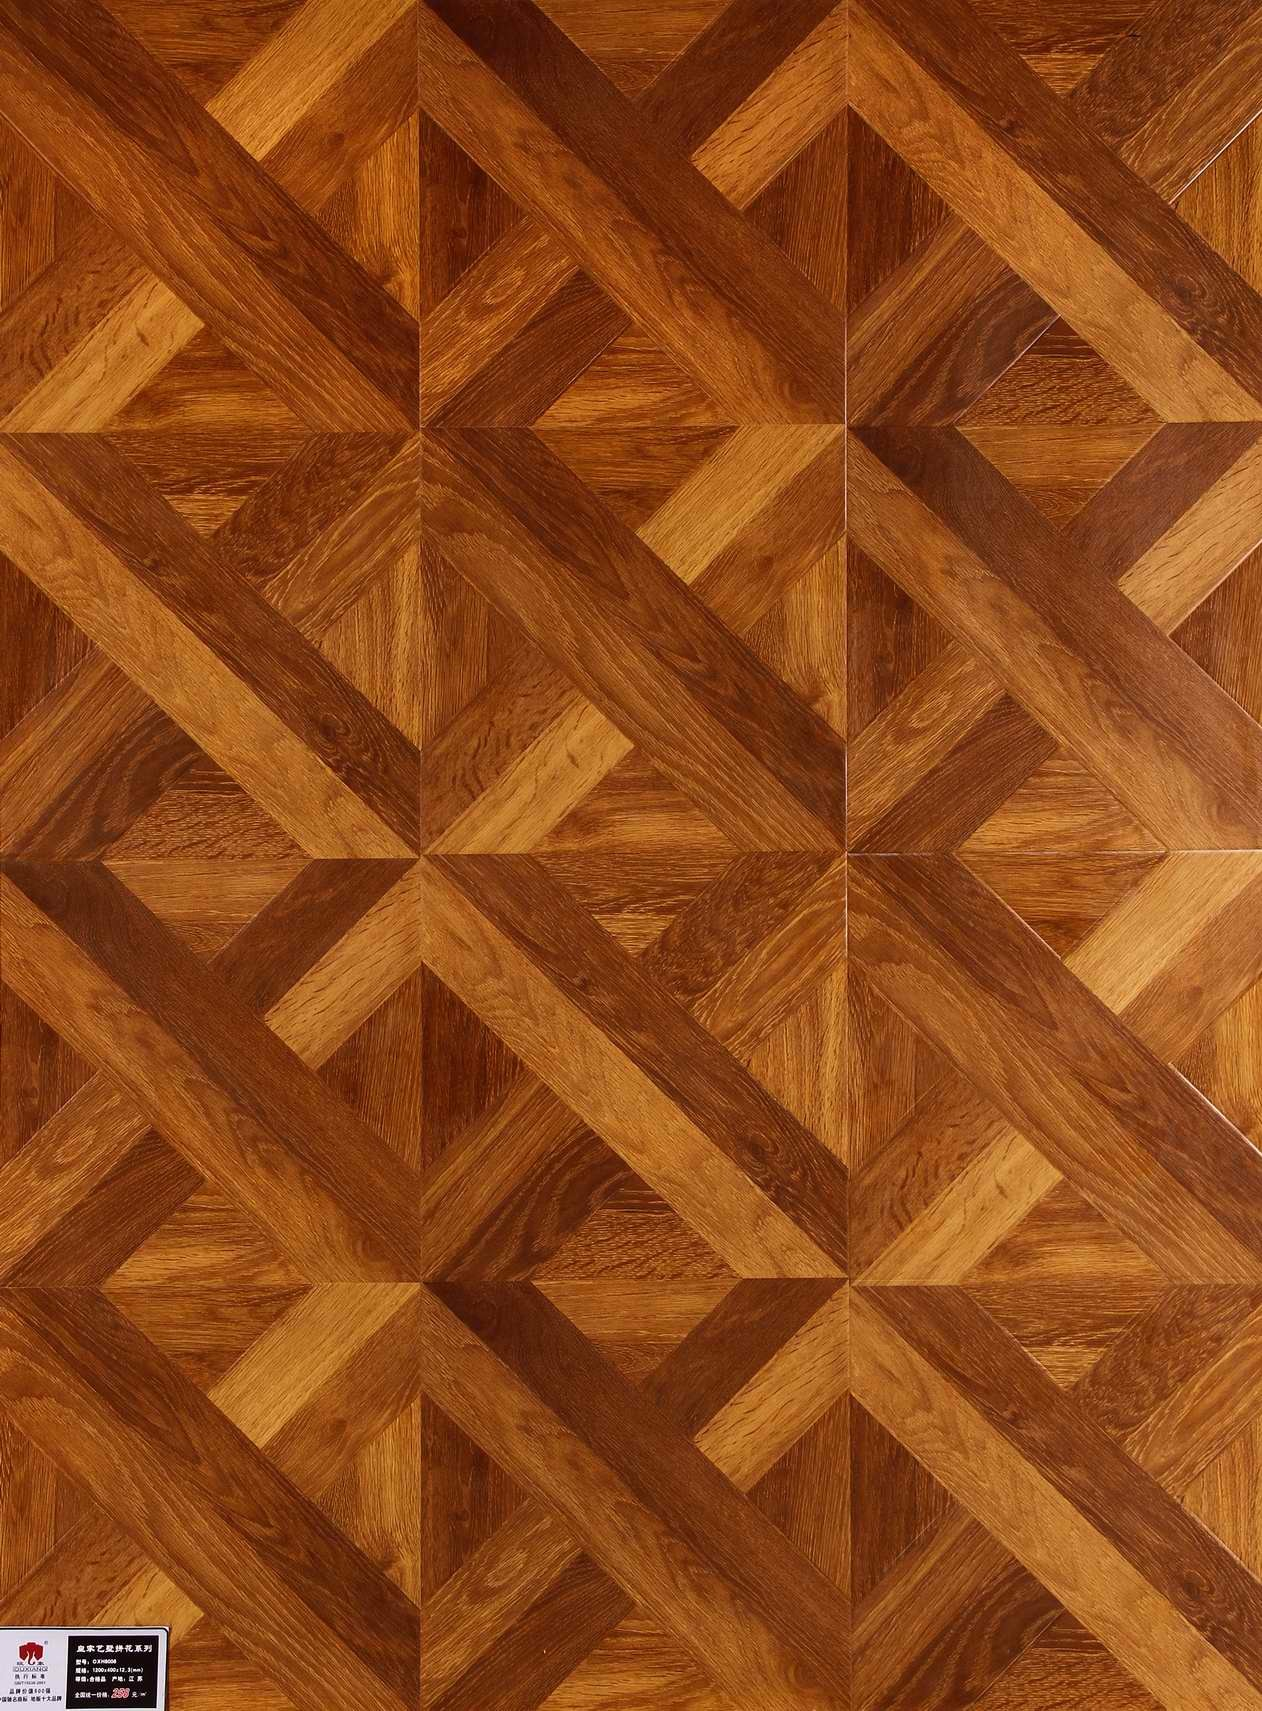 Parquet Wood Flooring ~ Parquet flooring modern diy art designs